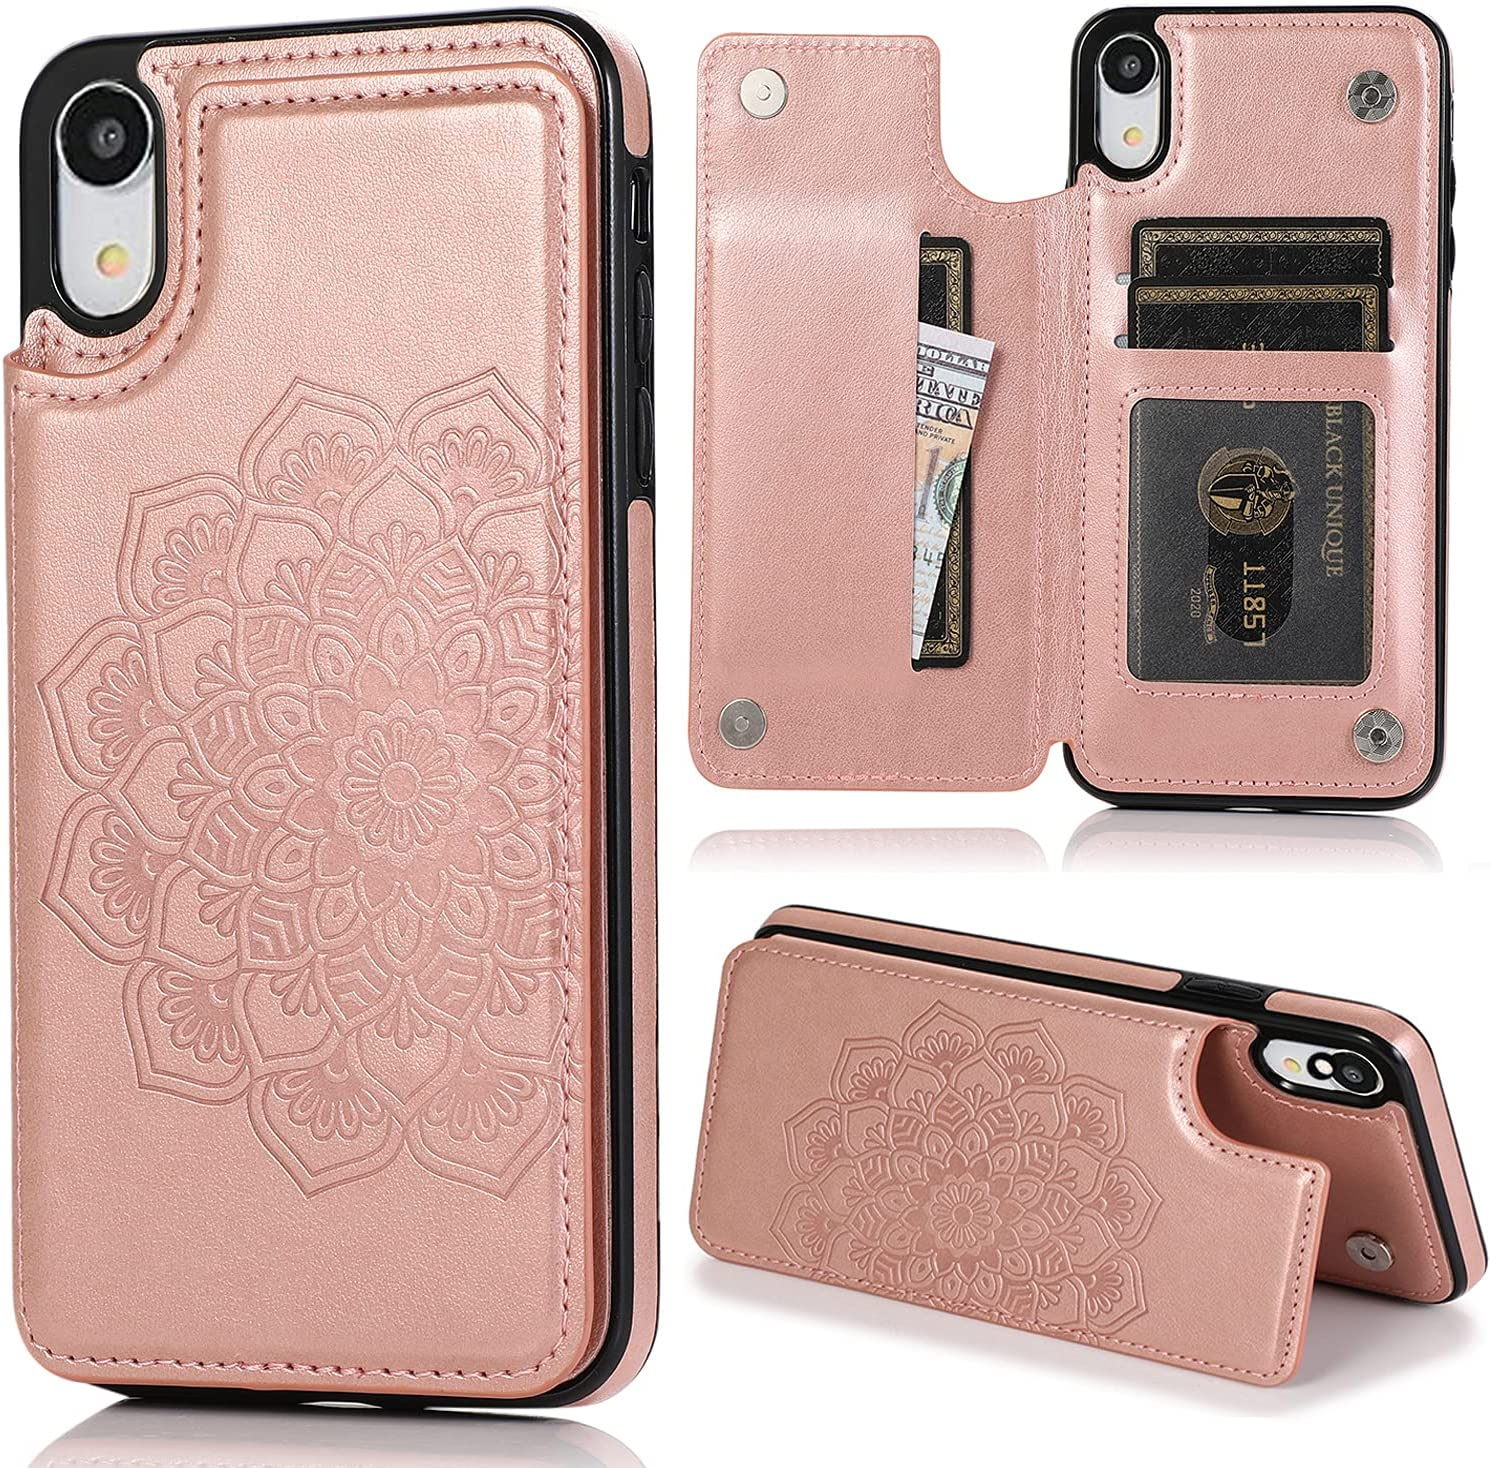 Pink Phone Case for iPhone XR with ID&Credit Card Holder Slots Pockets Wallet Back Cover Purse Flower Flip Cell iPhoneXR iPhone10R i Phonex 10XR 10R 10 R RX CR iPhoneXRcases Cases Soft Girls Rose Gold